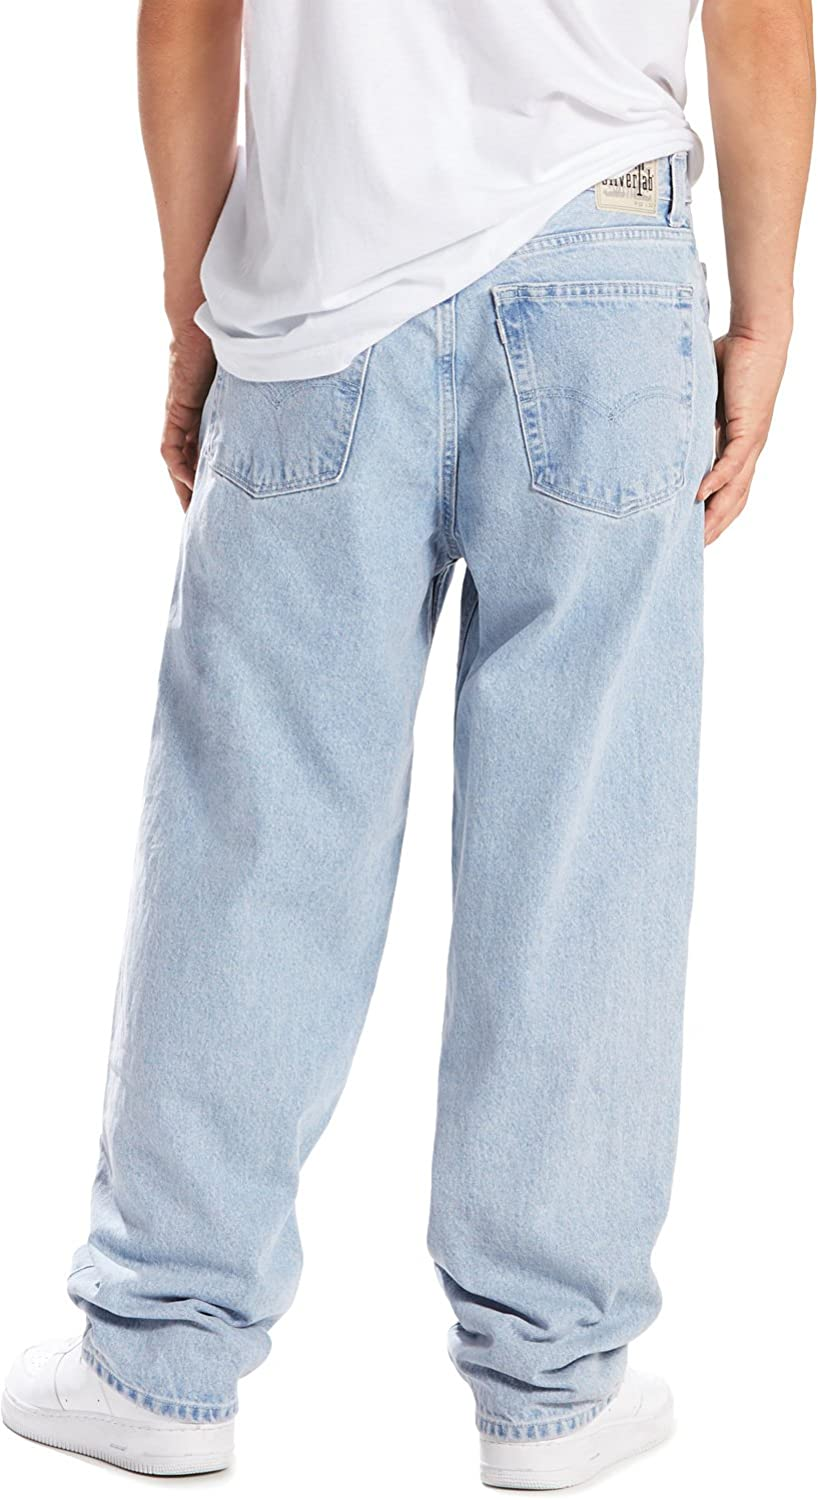 Levi Silvertab Jeans Baggy Fit Cheaper Than Retail Price Buy Clothing Accessories And Lifestyle Products For Women Men